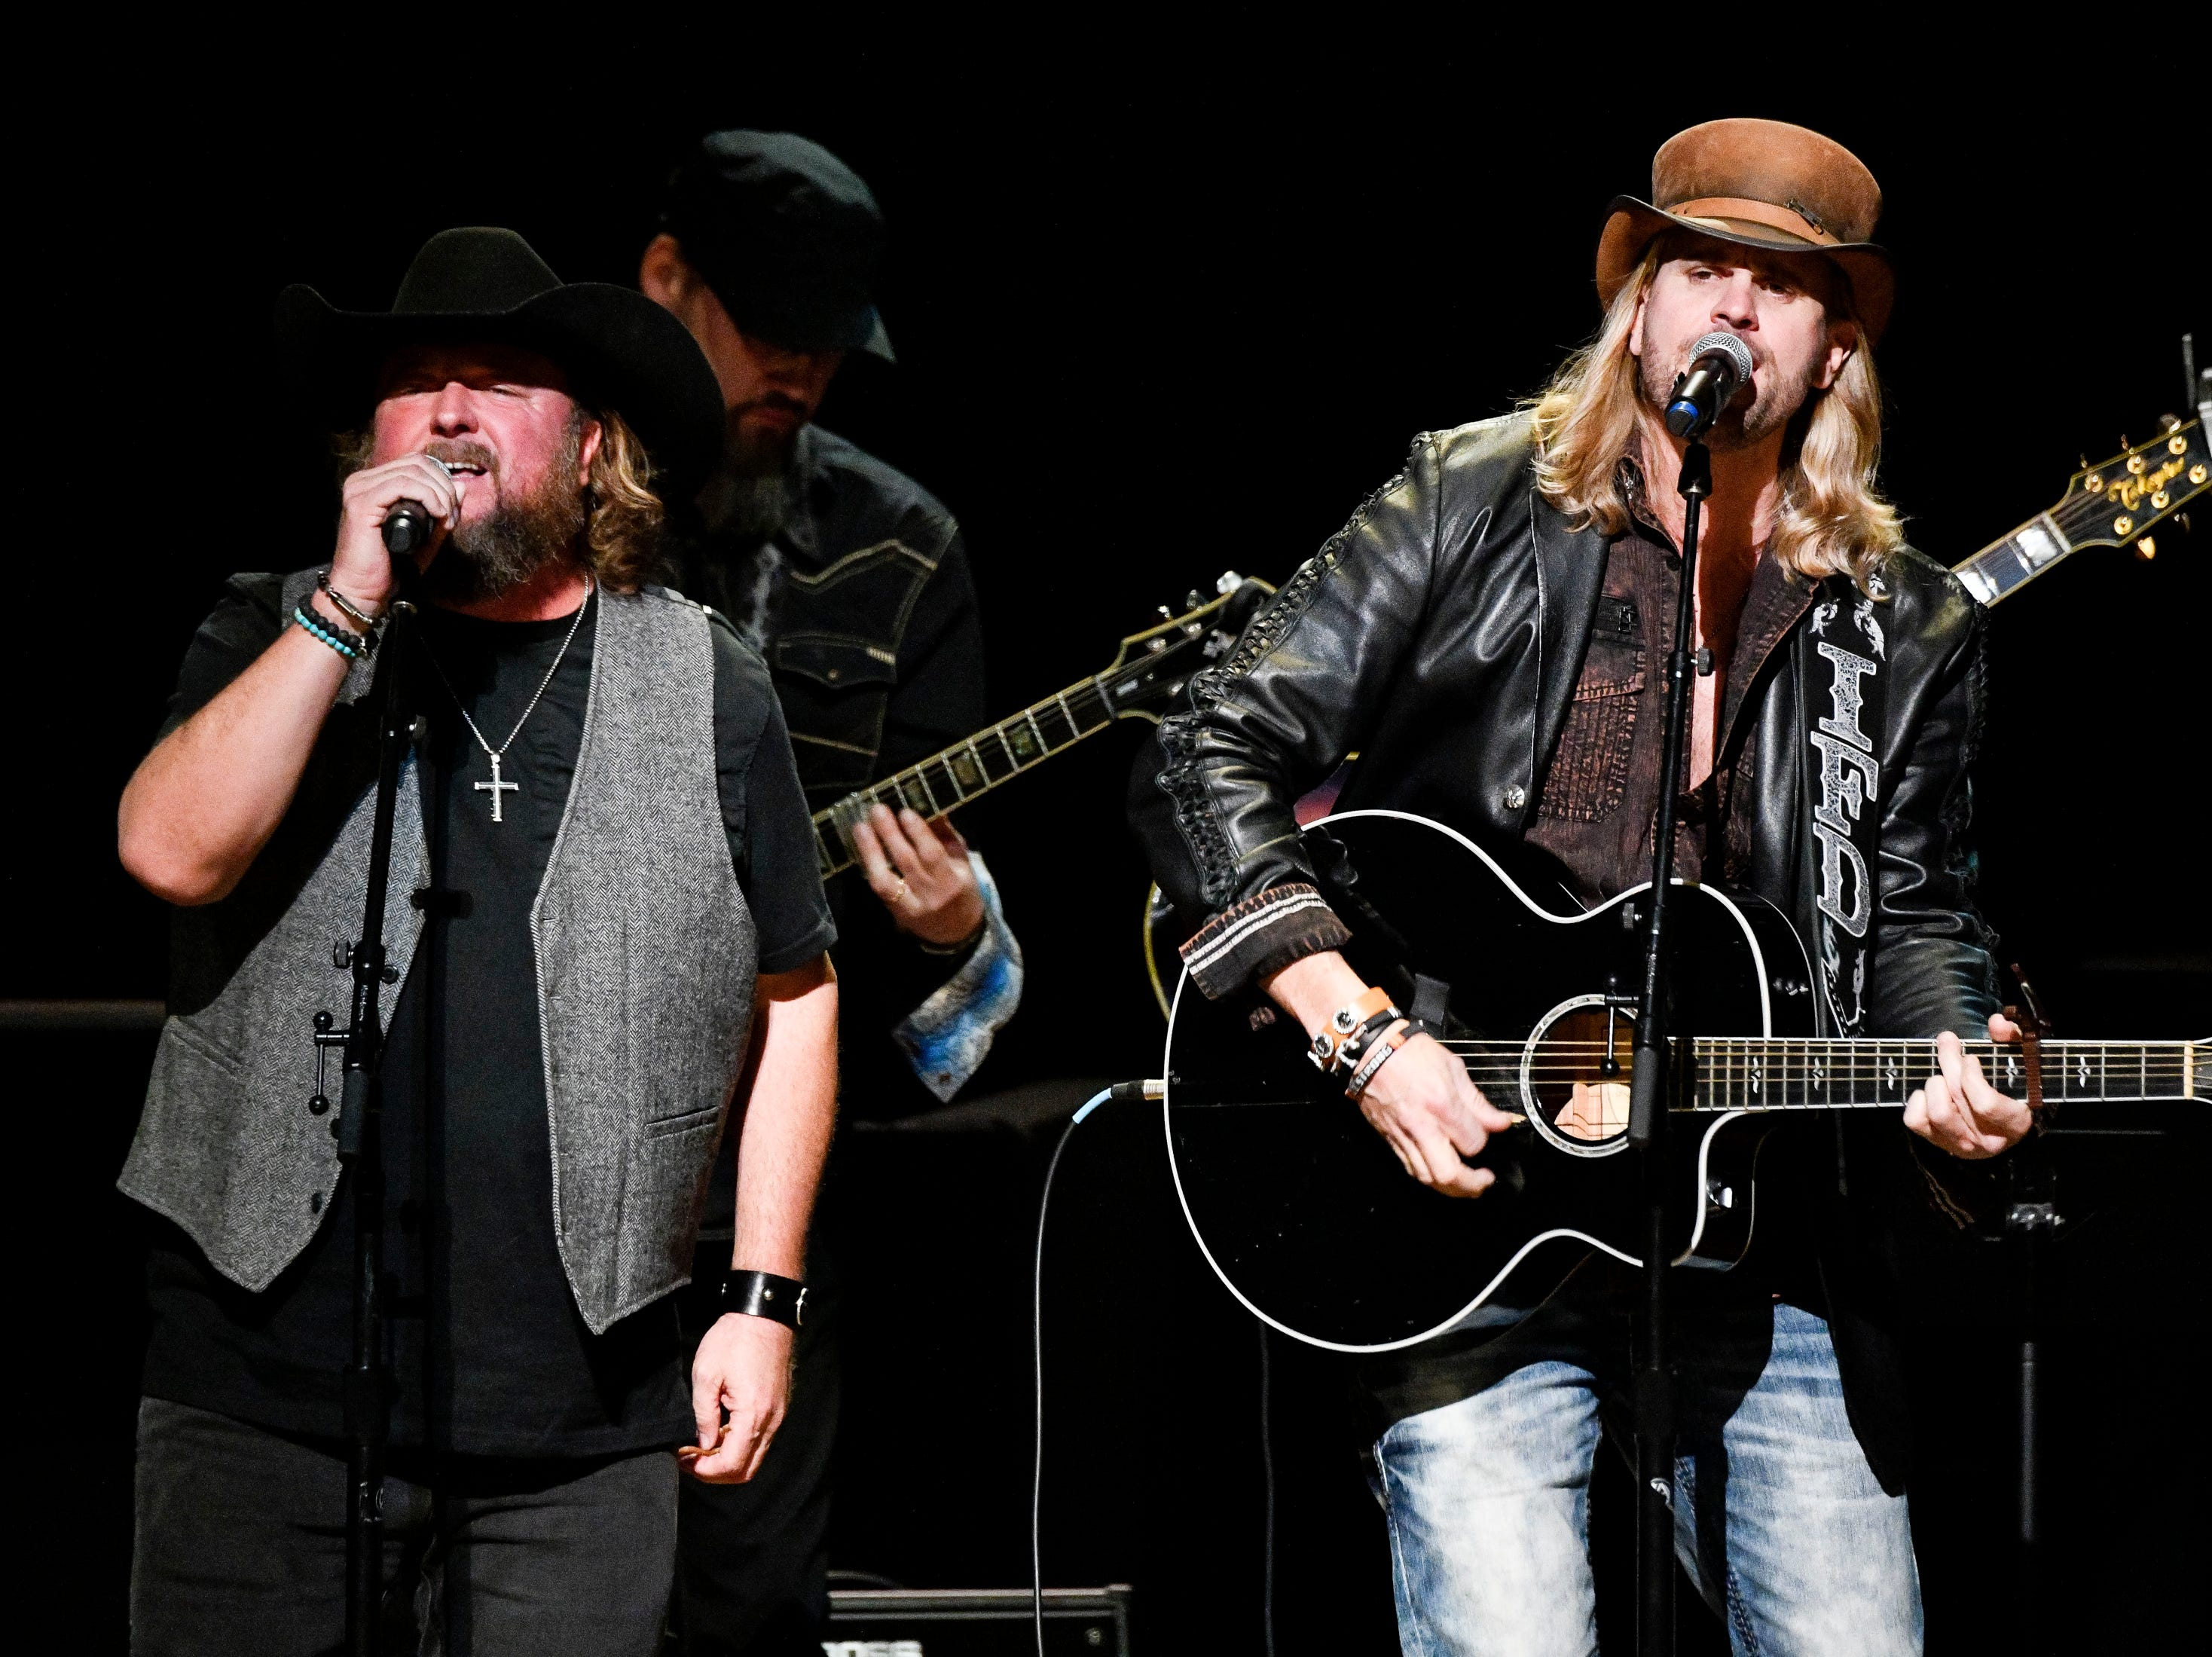 Ira Dean, right, and Colt Ford perform during the C'Ya On The Flipside Benefit Concert at the Grand Ole Opry House in Nashville, Tenn., Wednesday, Jan. 9, 2019.